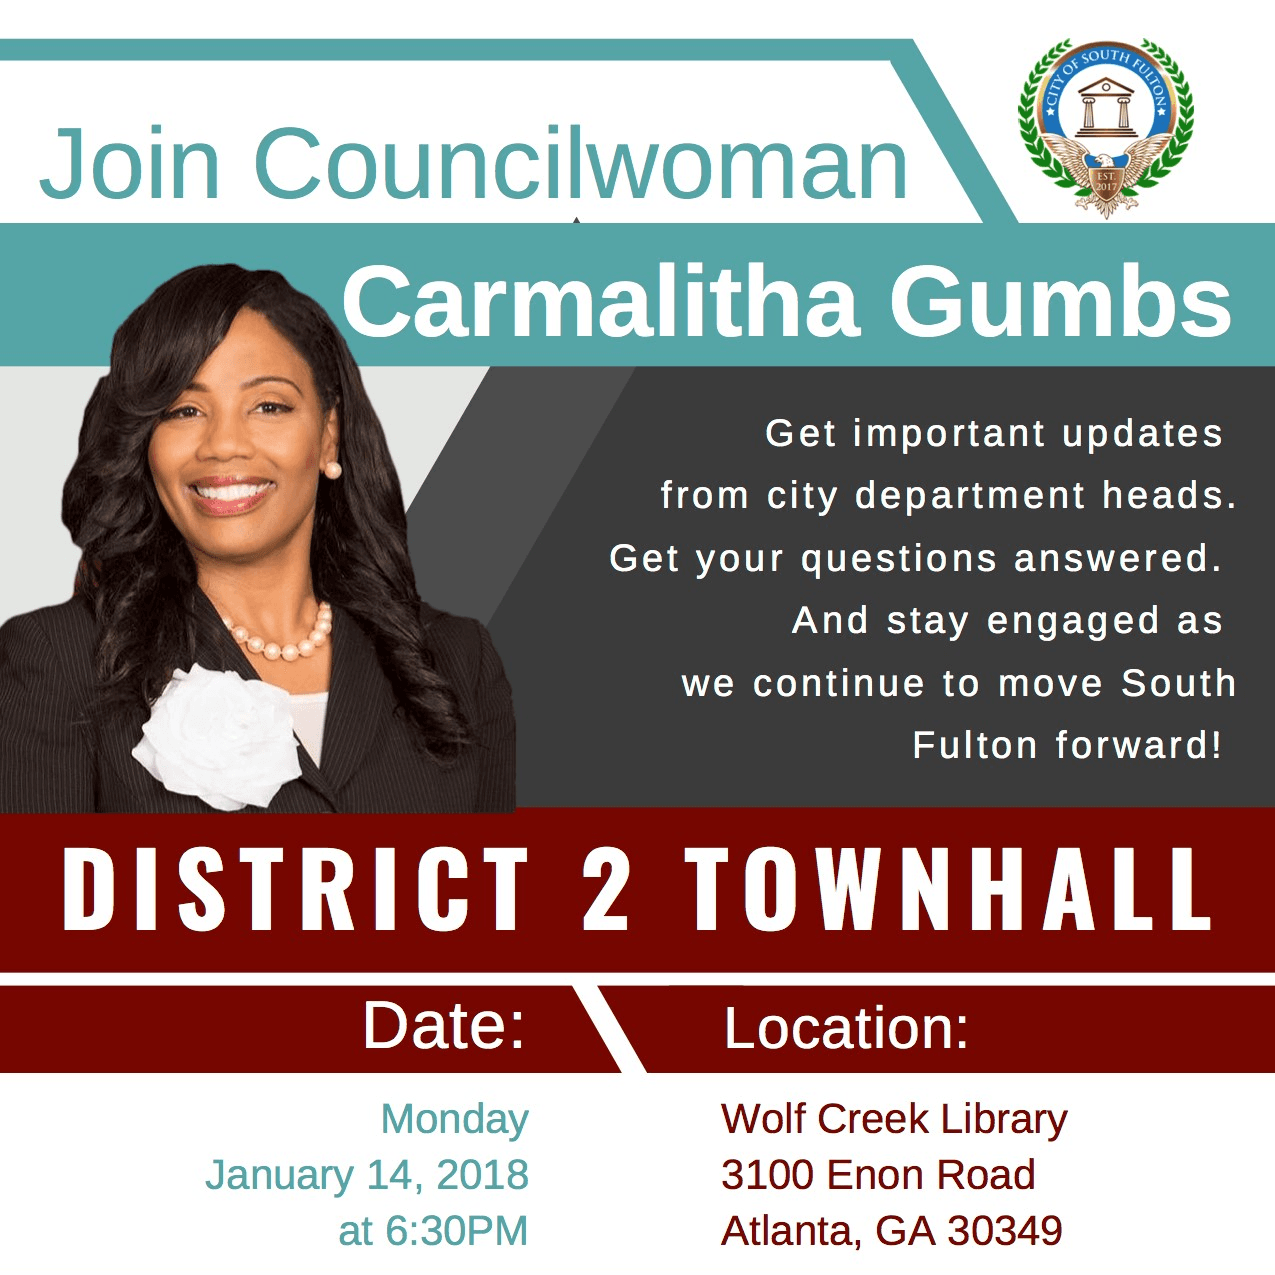 District 2 townhall January cropped